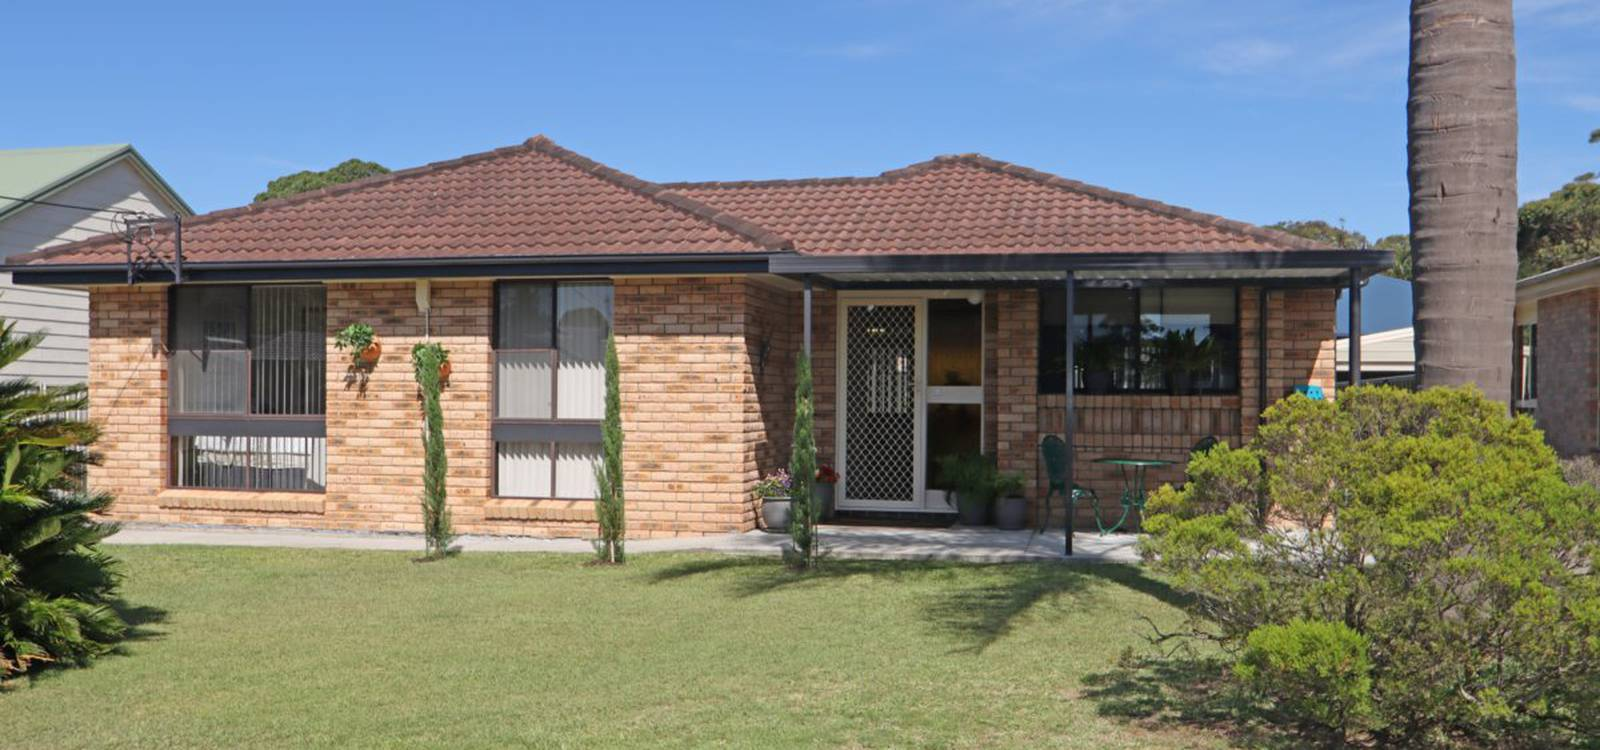 5 Greentree Avenue SUSSEX INLET, NSW 2540 - photo 1